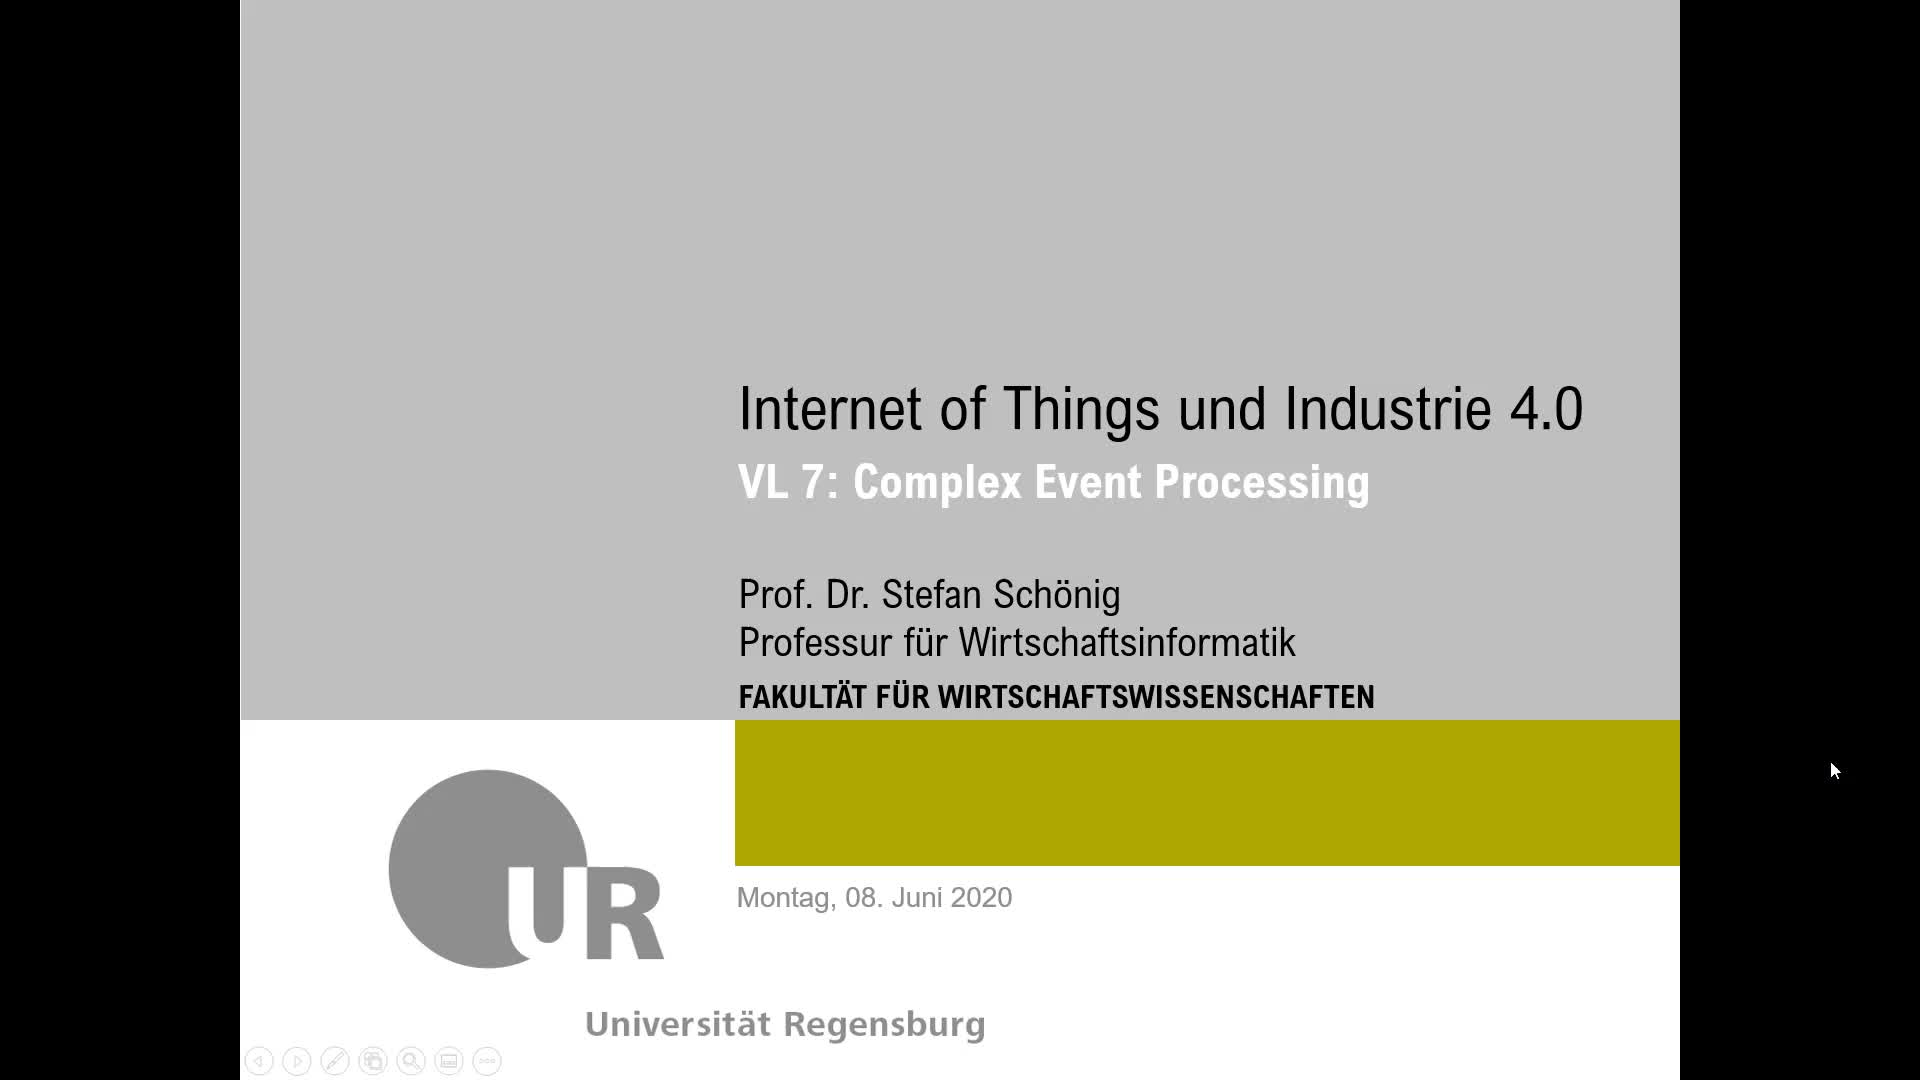 SS 2020 - Internet of Things und Industrie 4.0 - Kapitel 7 (Complex Event Processing)